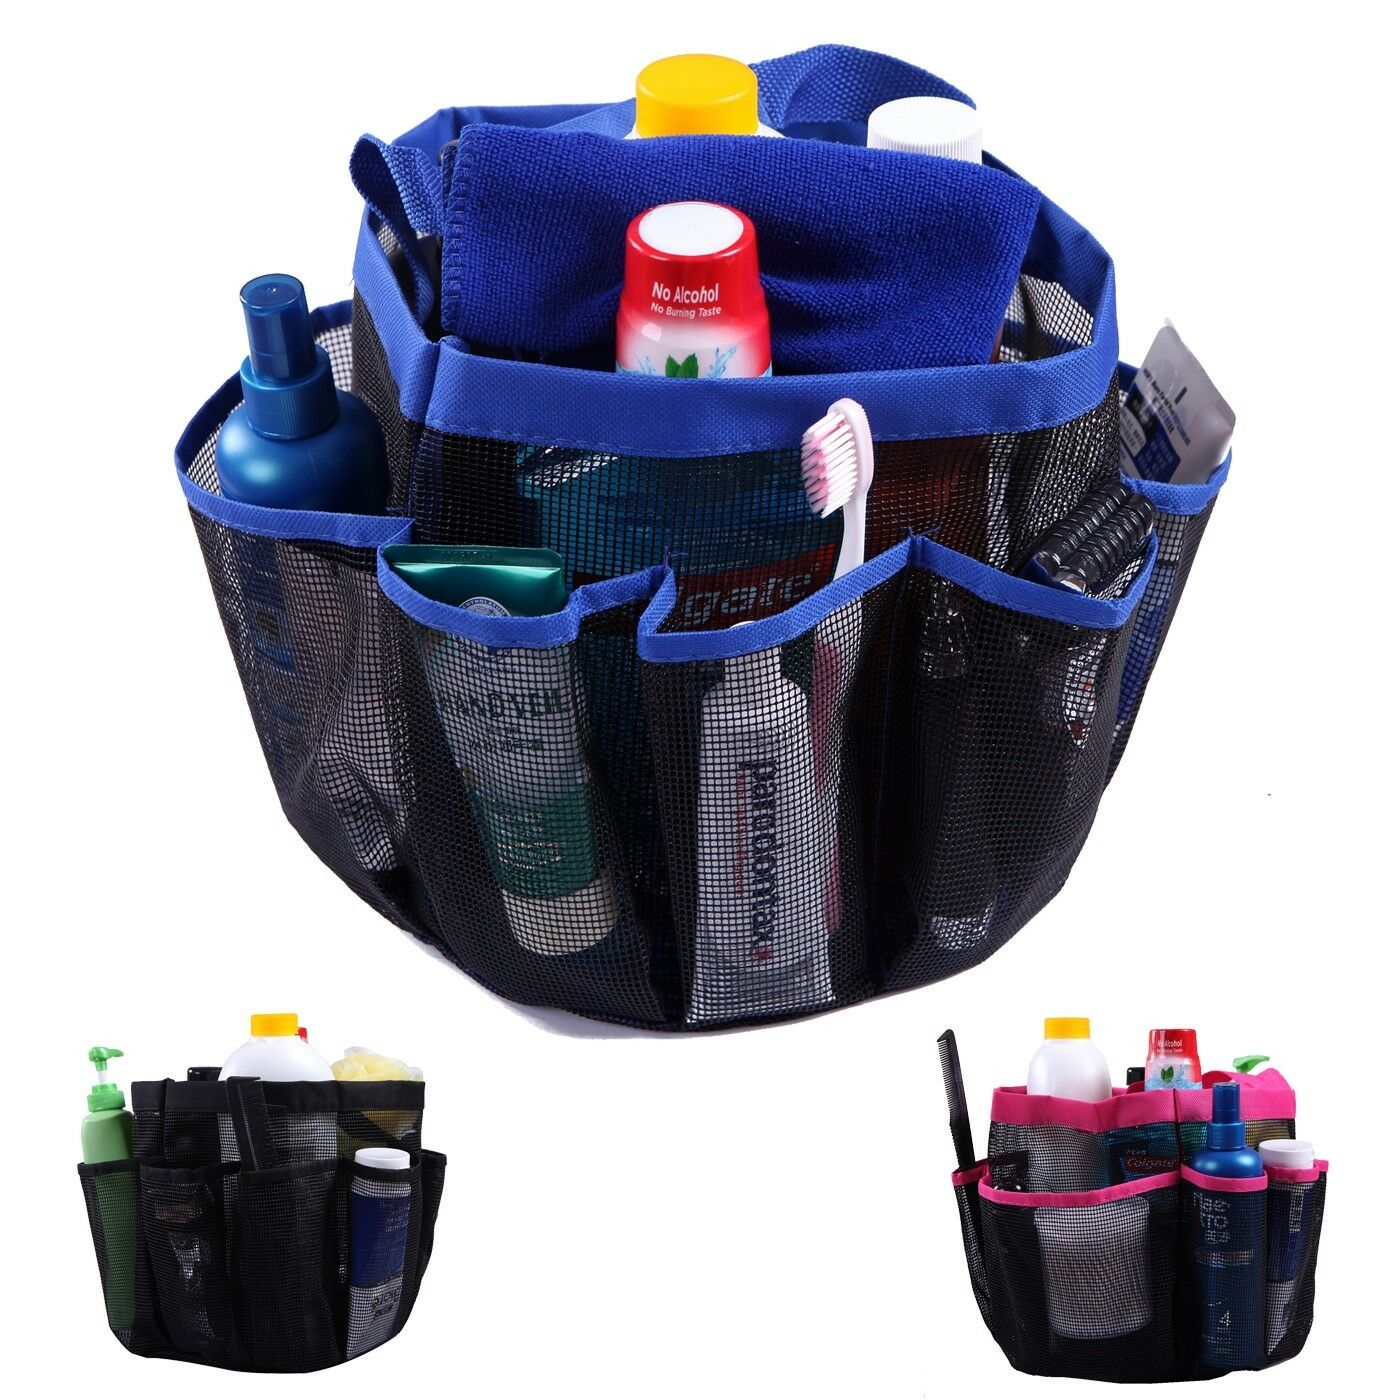 PACKABLE MESH SHOWER Bag Caddy Bathroom Carry Tote Toiletry Bath ...